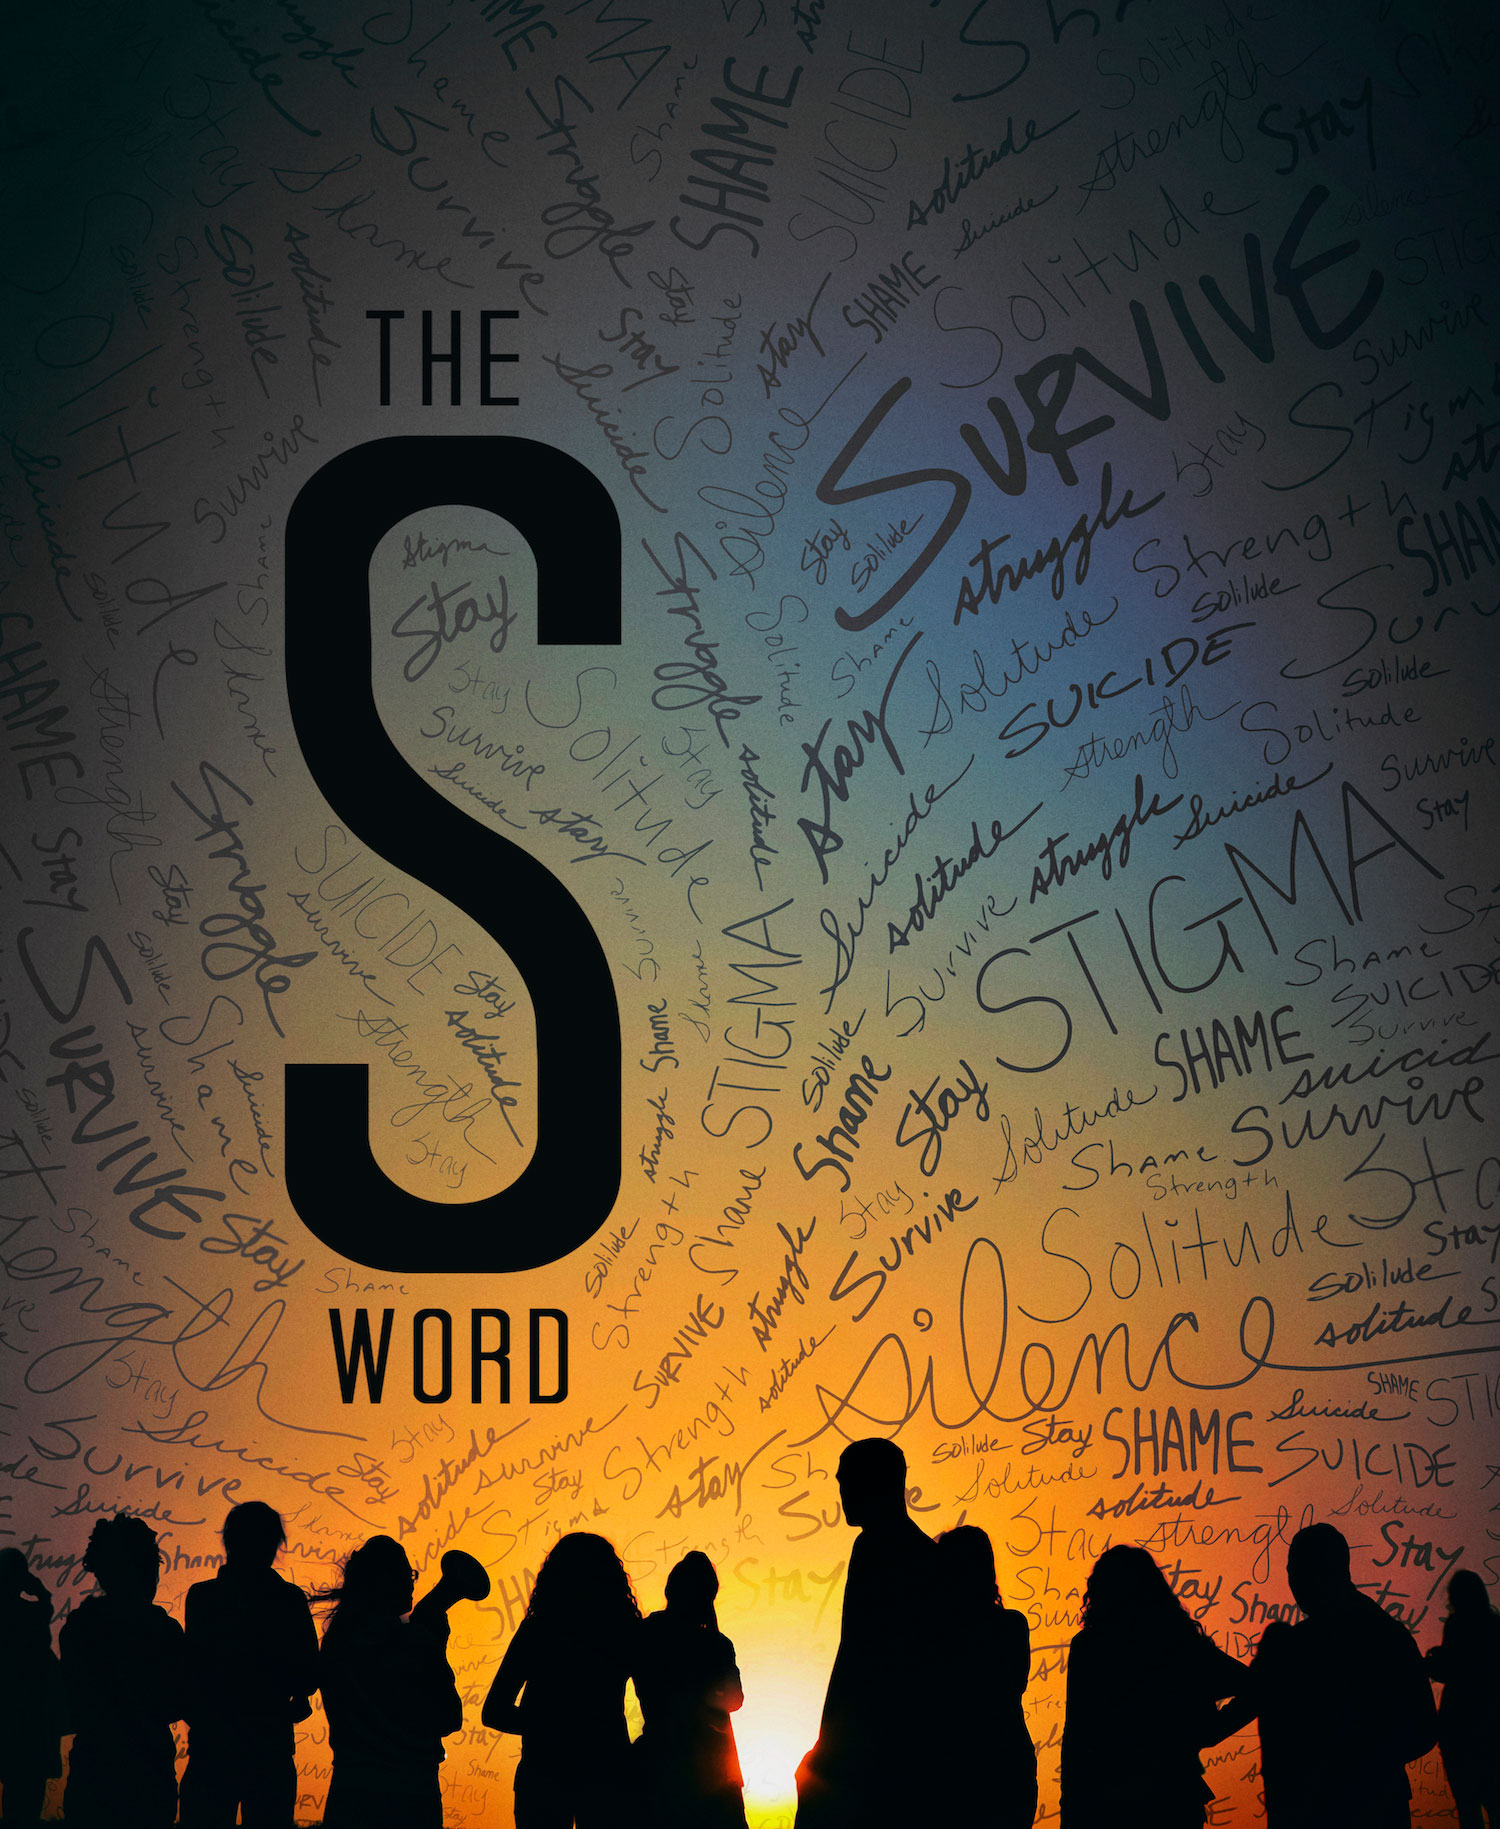 Hoag presents The S Word